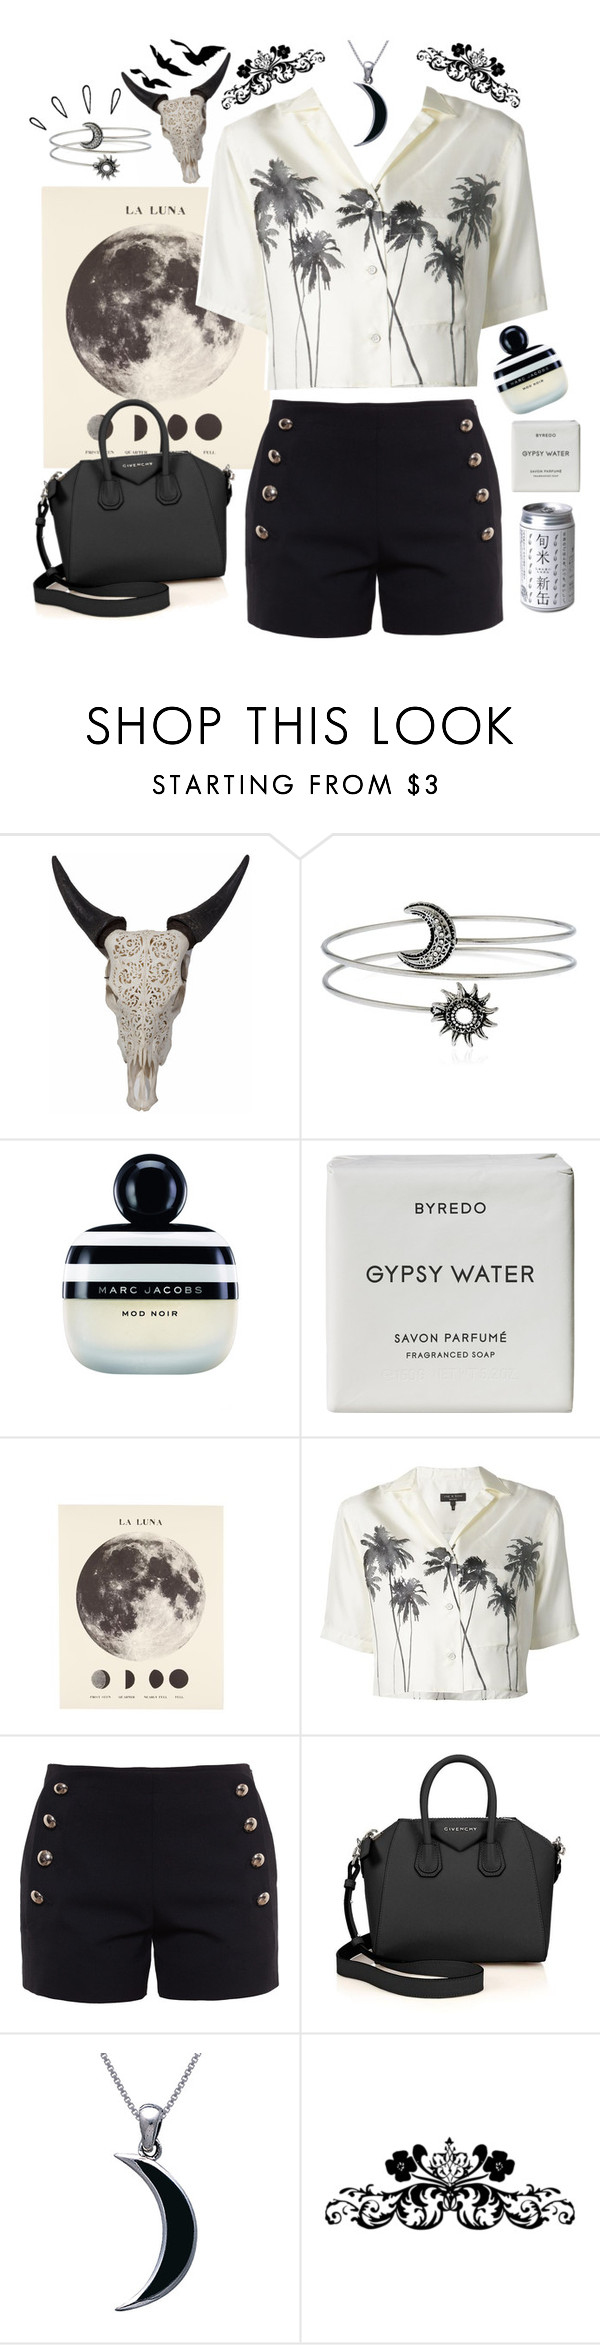 """Black and White"" by zab-zebra ❤ liked on Polyvore featuring Marc Jacobs, Byredo, rag & bone, Chloé, Givenchy, Carolina Glamour Collection, Old Navy, women's clothing, women and female"